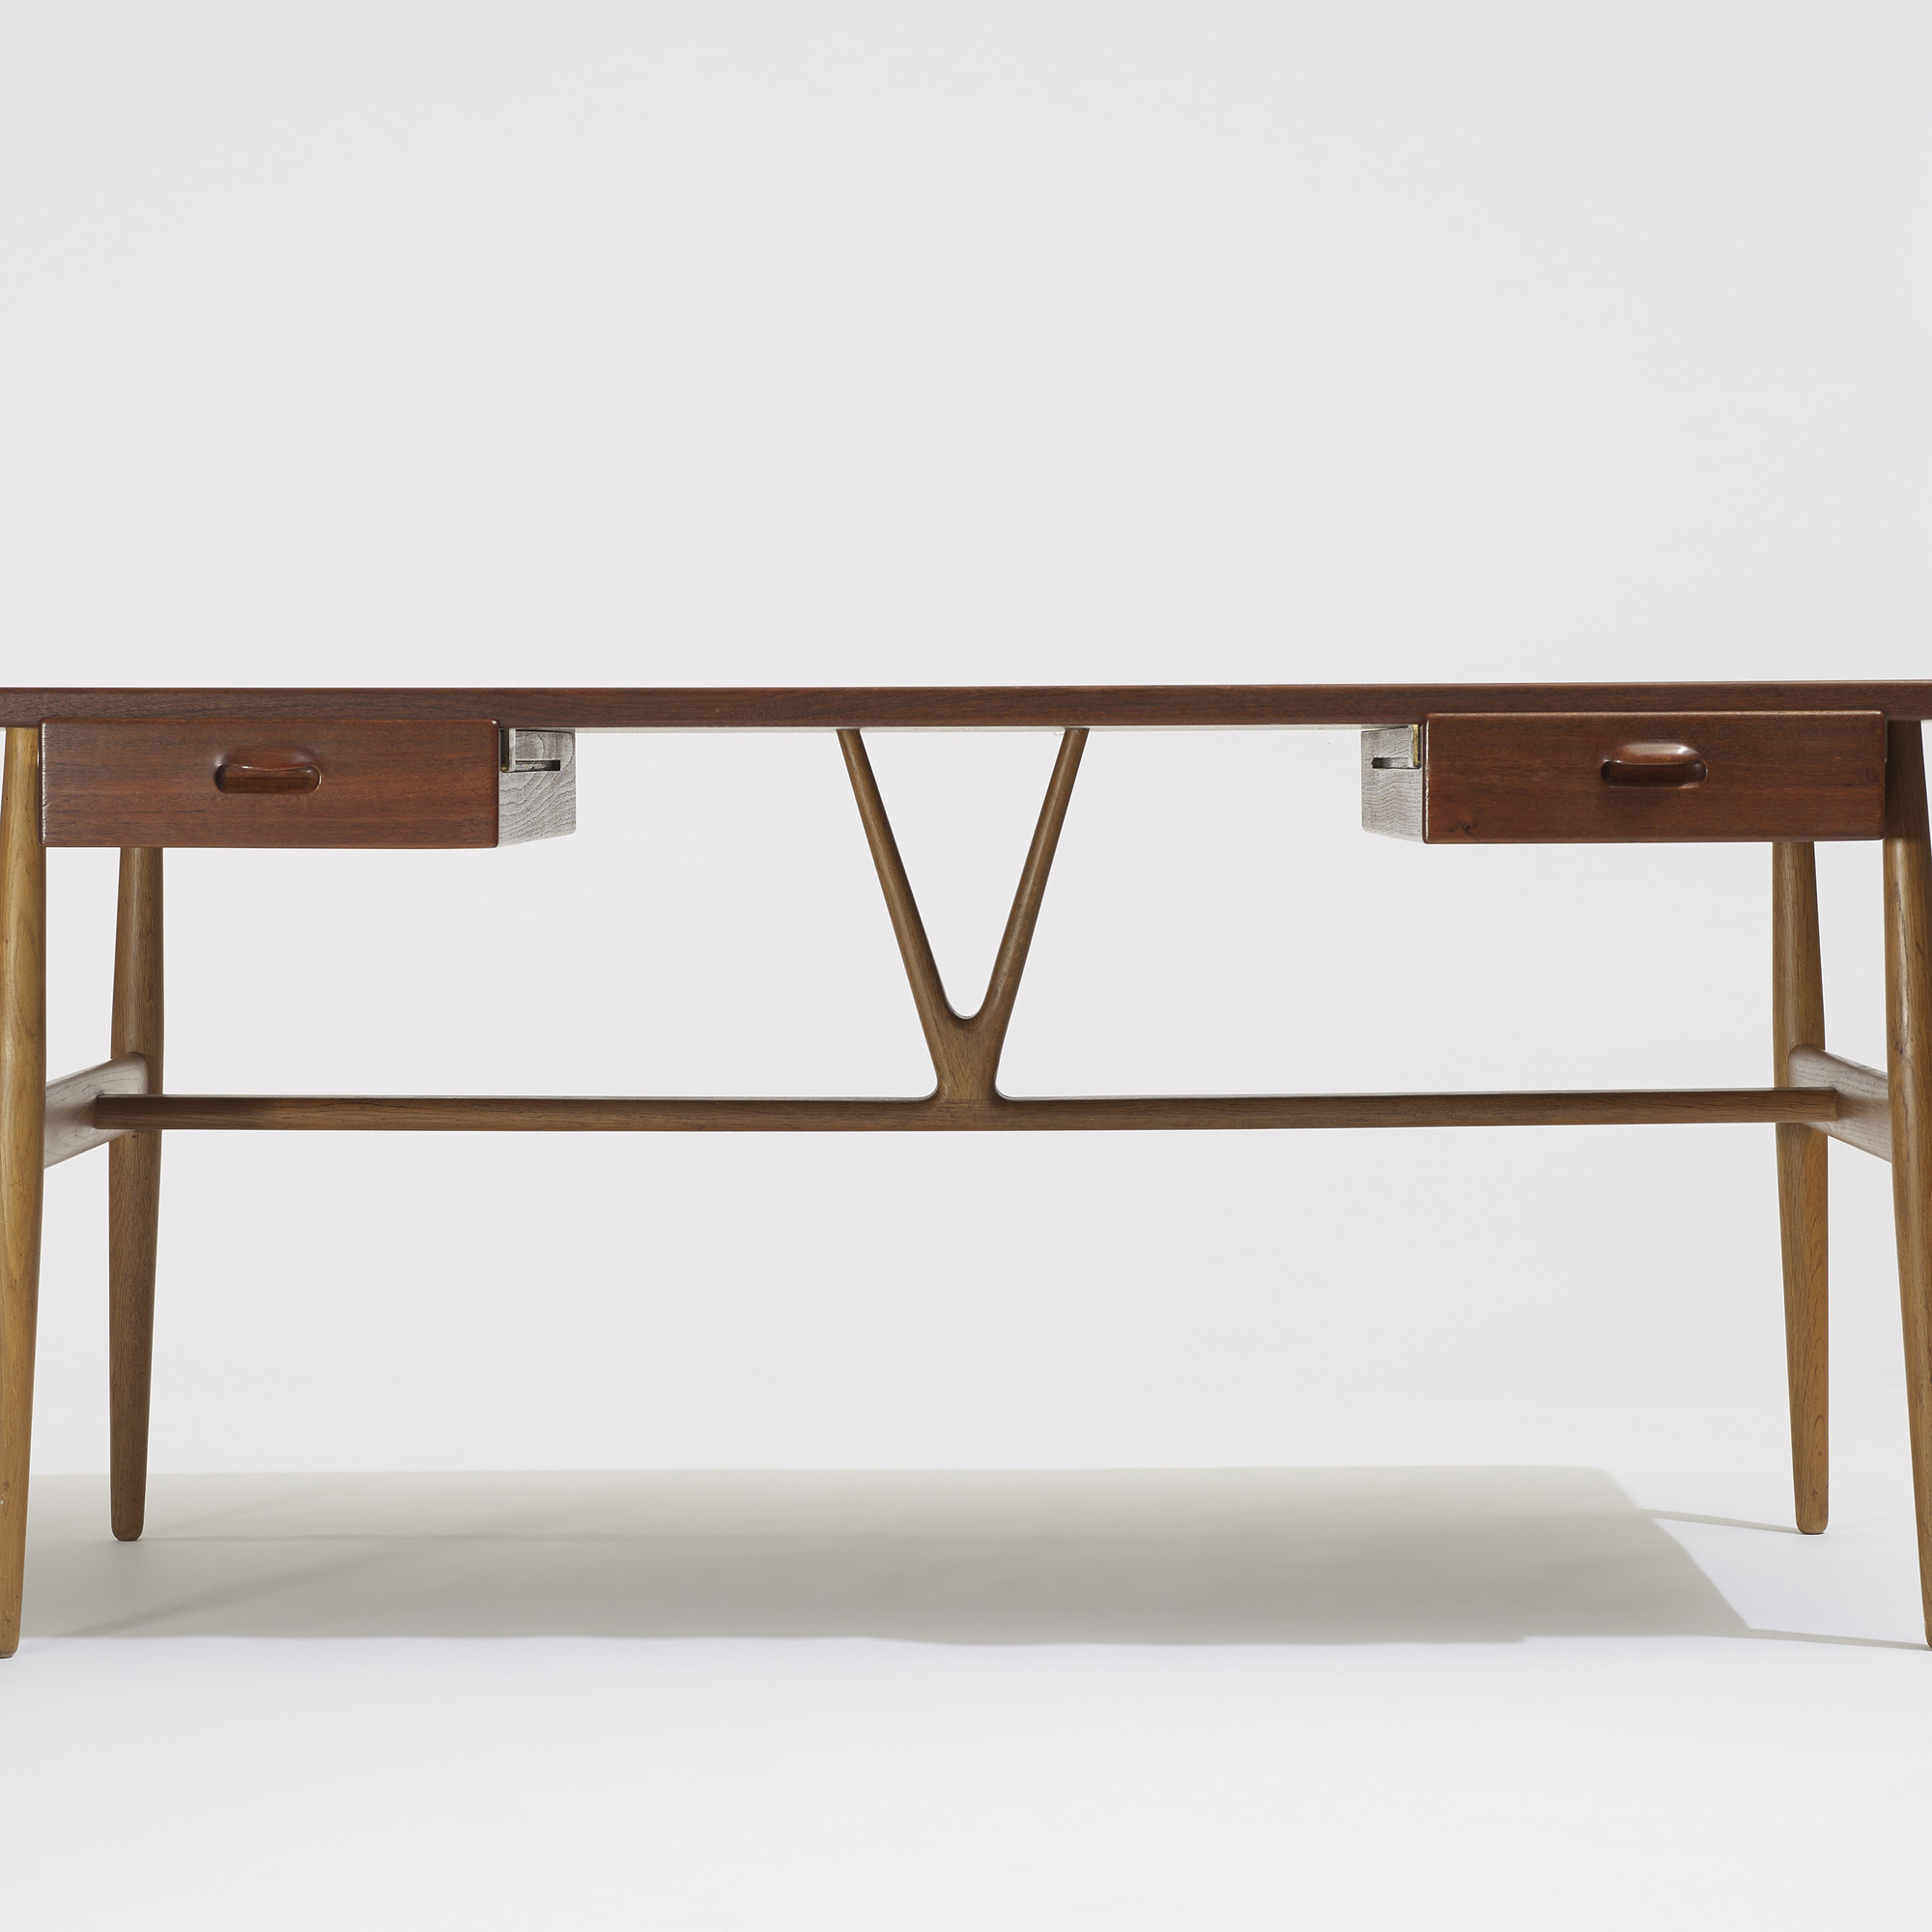 189 hans j wegner desk model jh563 3 of 5 - Scan Design Desk